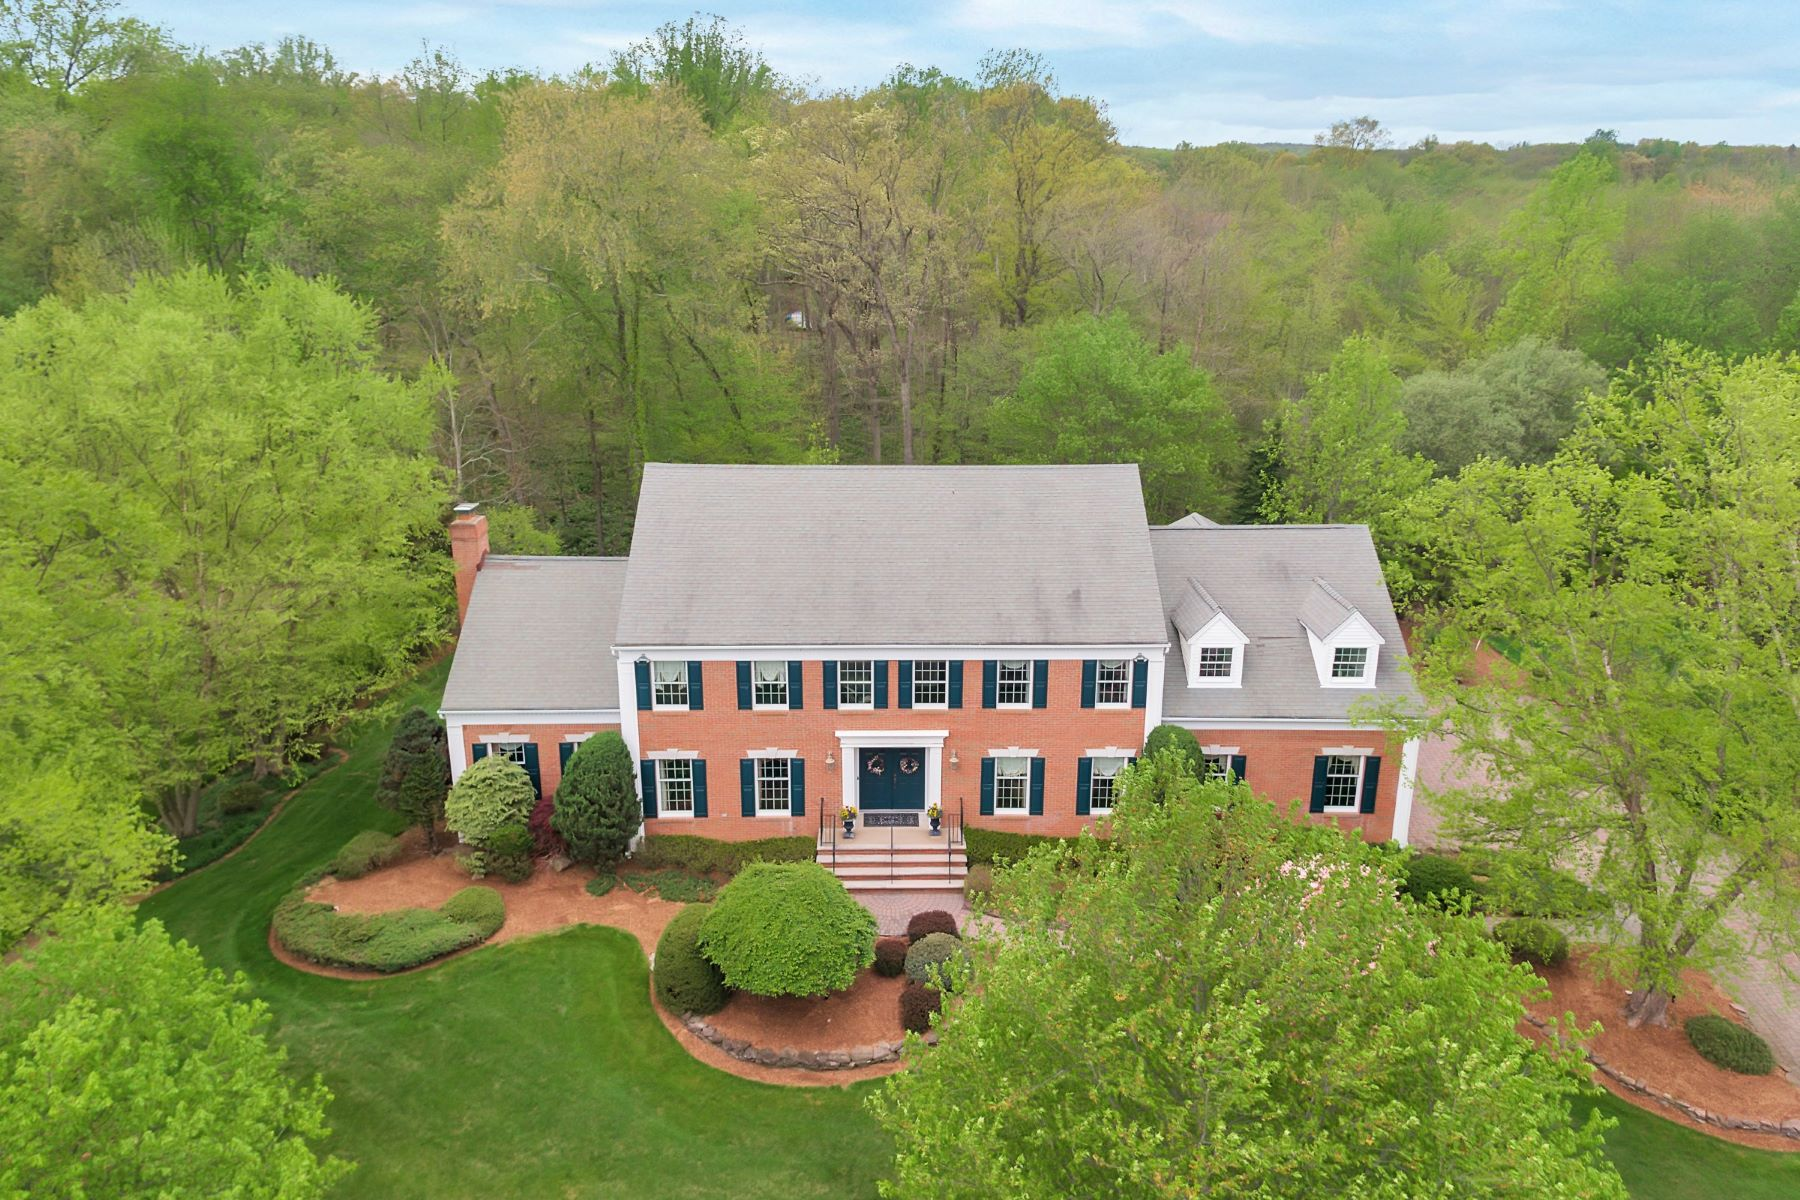 Single Family Home for Sale at Desirable Fardale Woods Estates 28 Hutton Drive Mahwah, New Jersey, 07430 United States